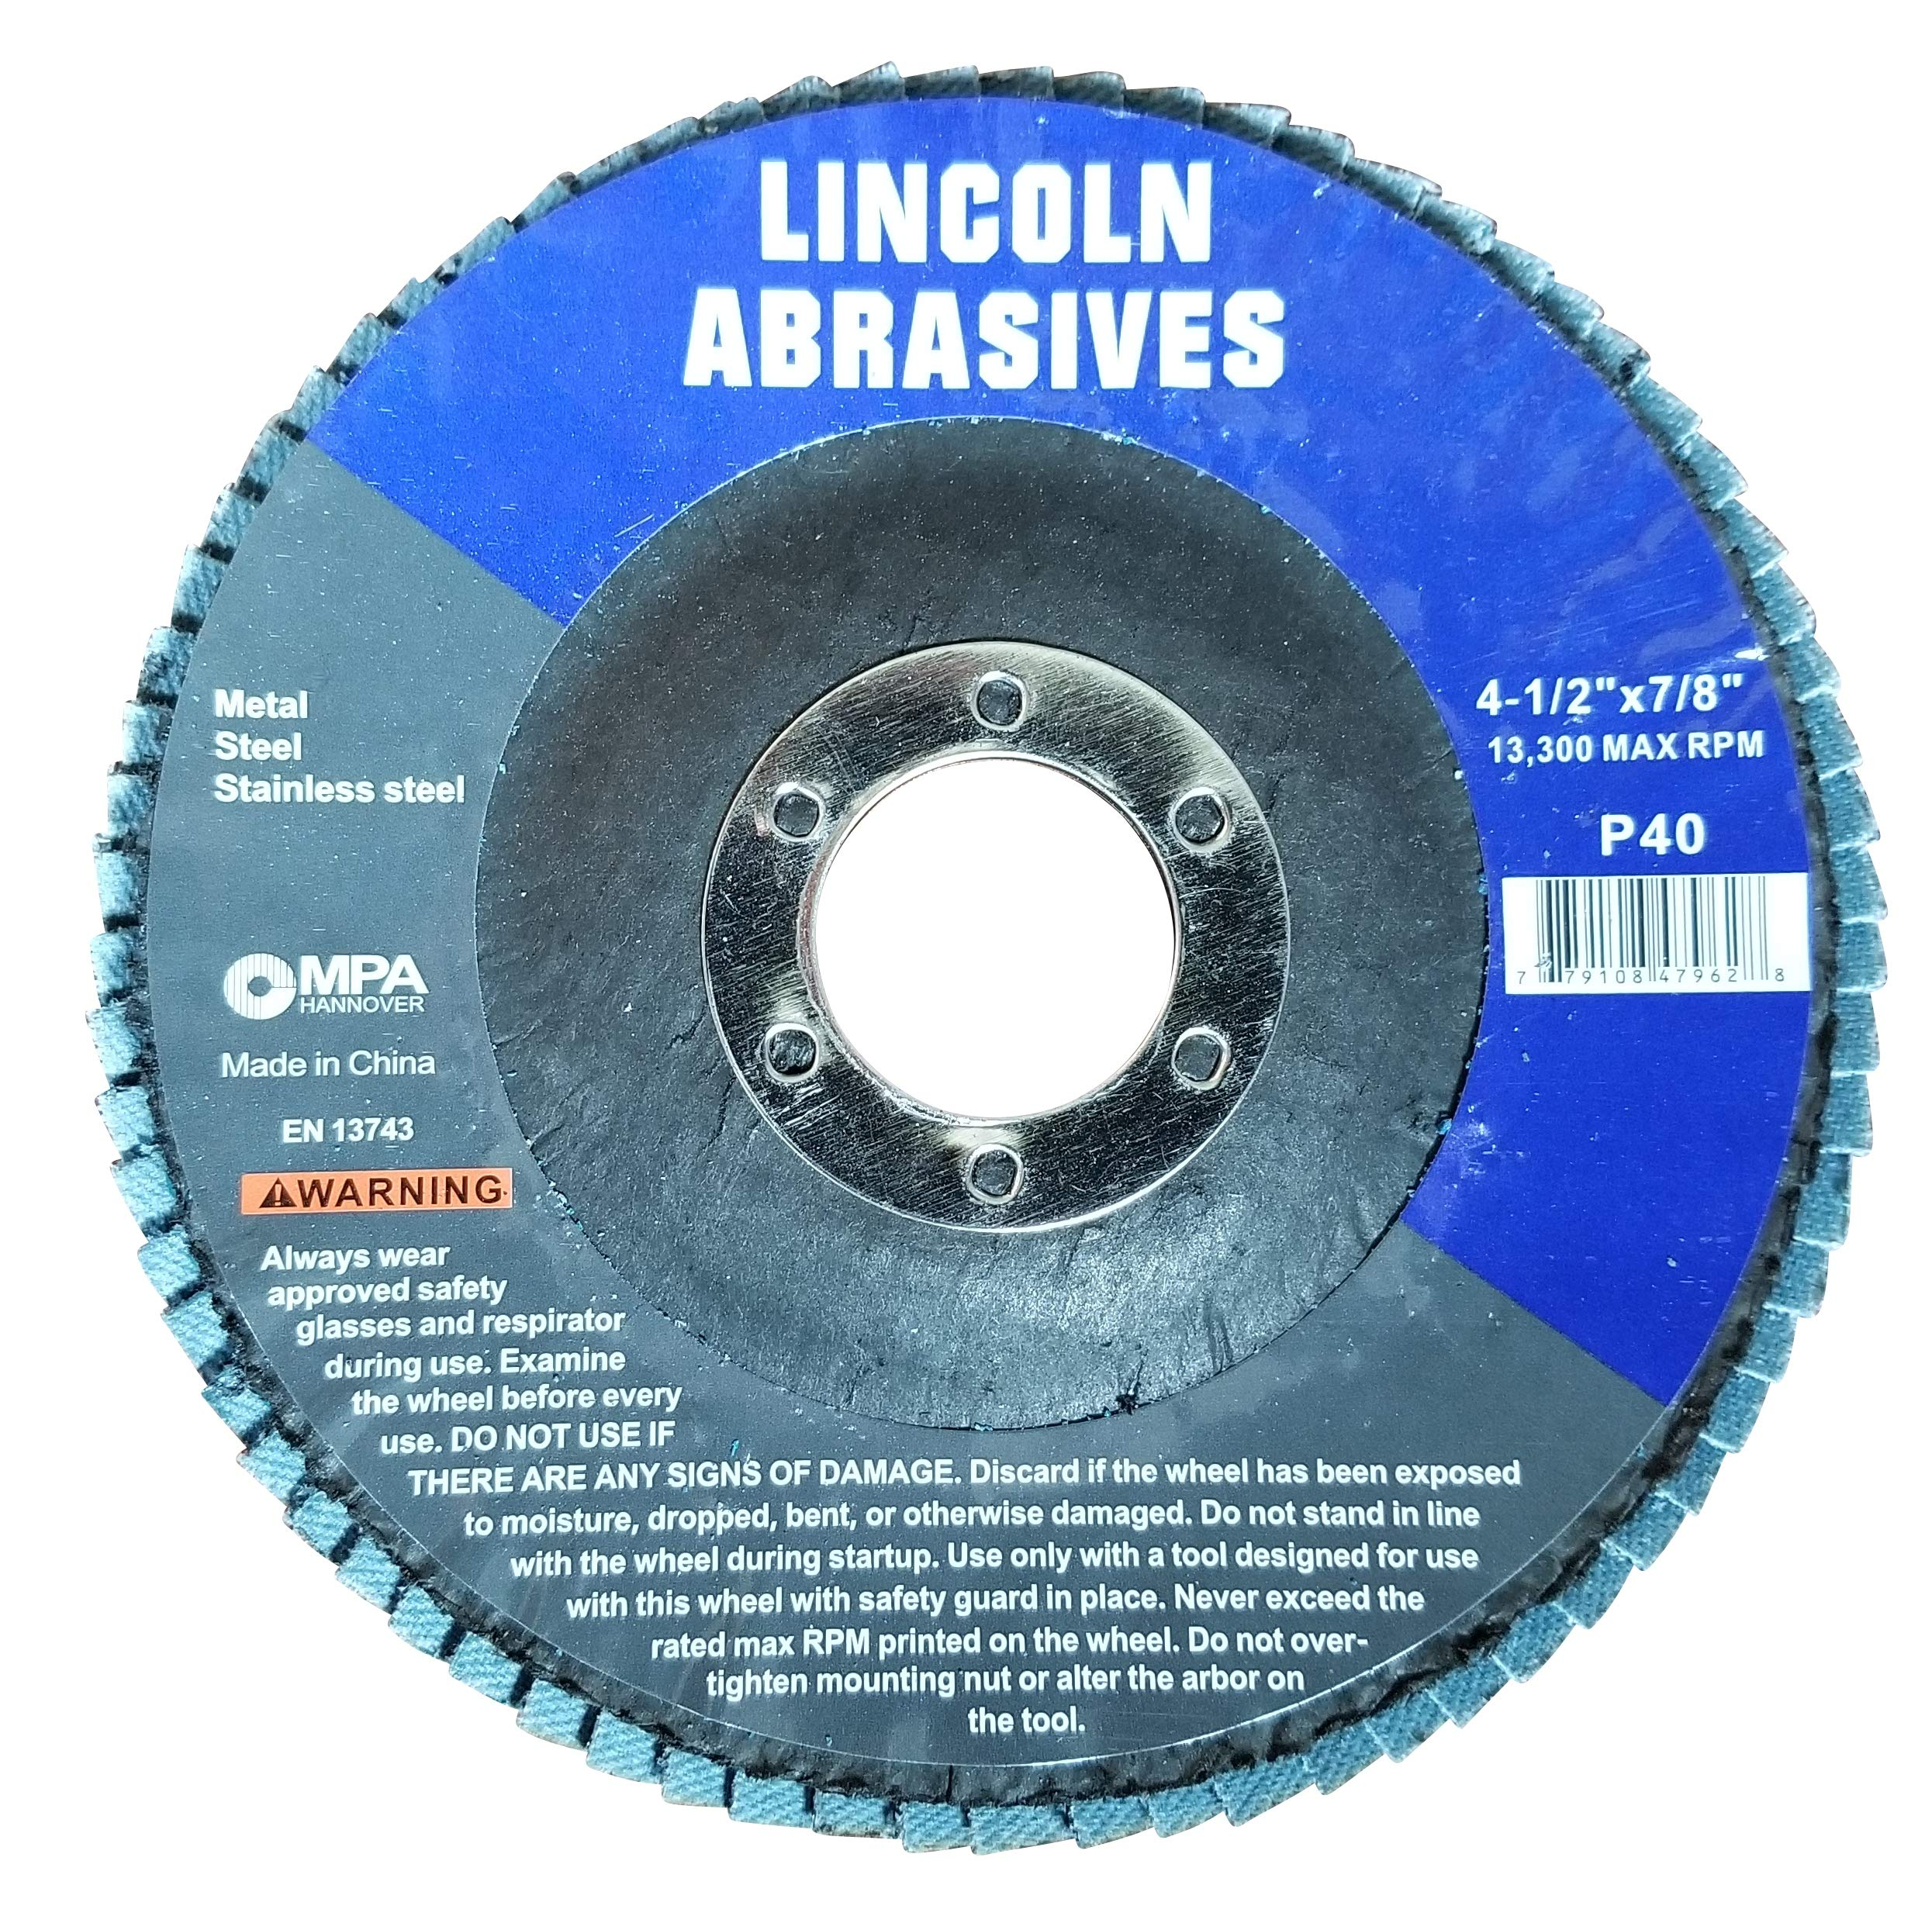 100 Pack Flap Discs 40 Grit 4.5'' x 7/8'' Sanding Wheels by Lincoln Abrasives (Image #2)